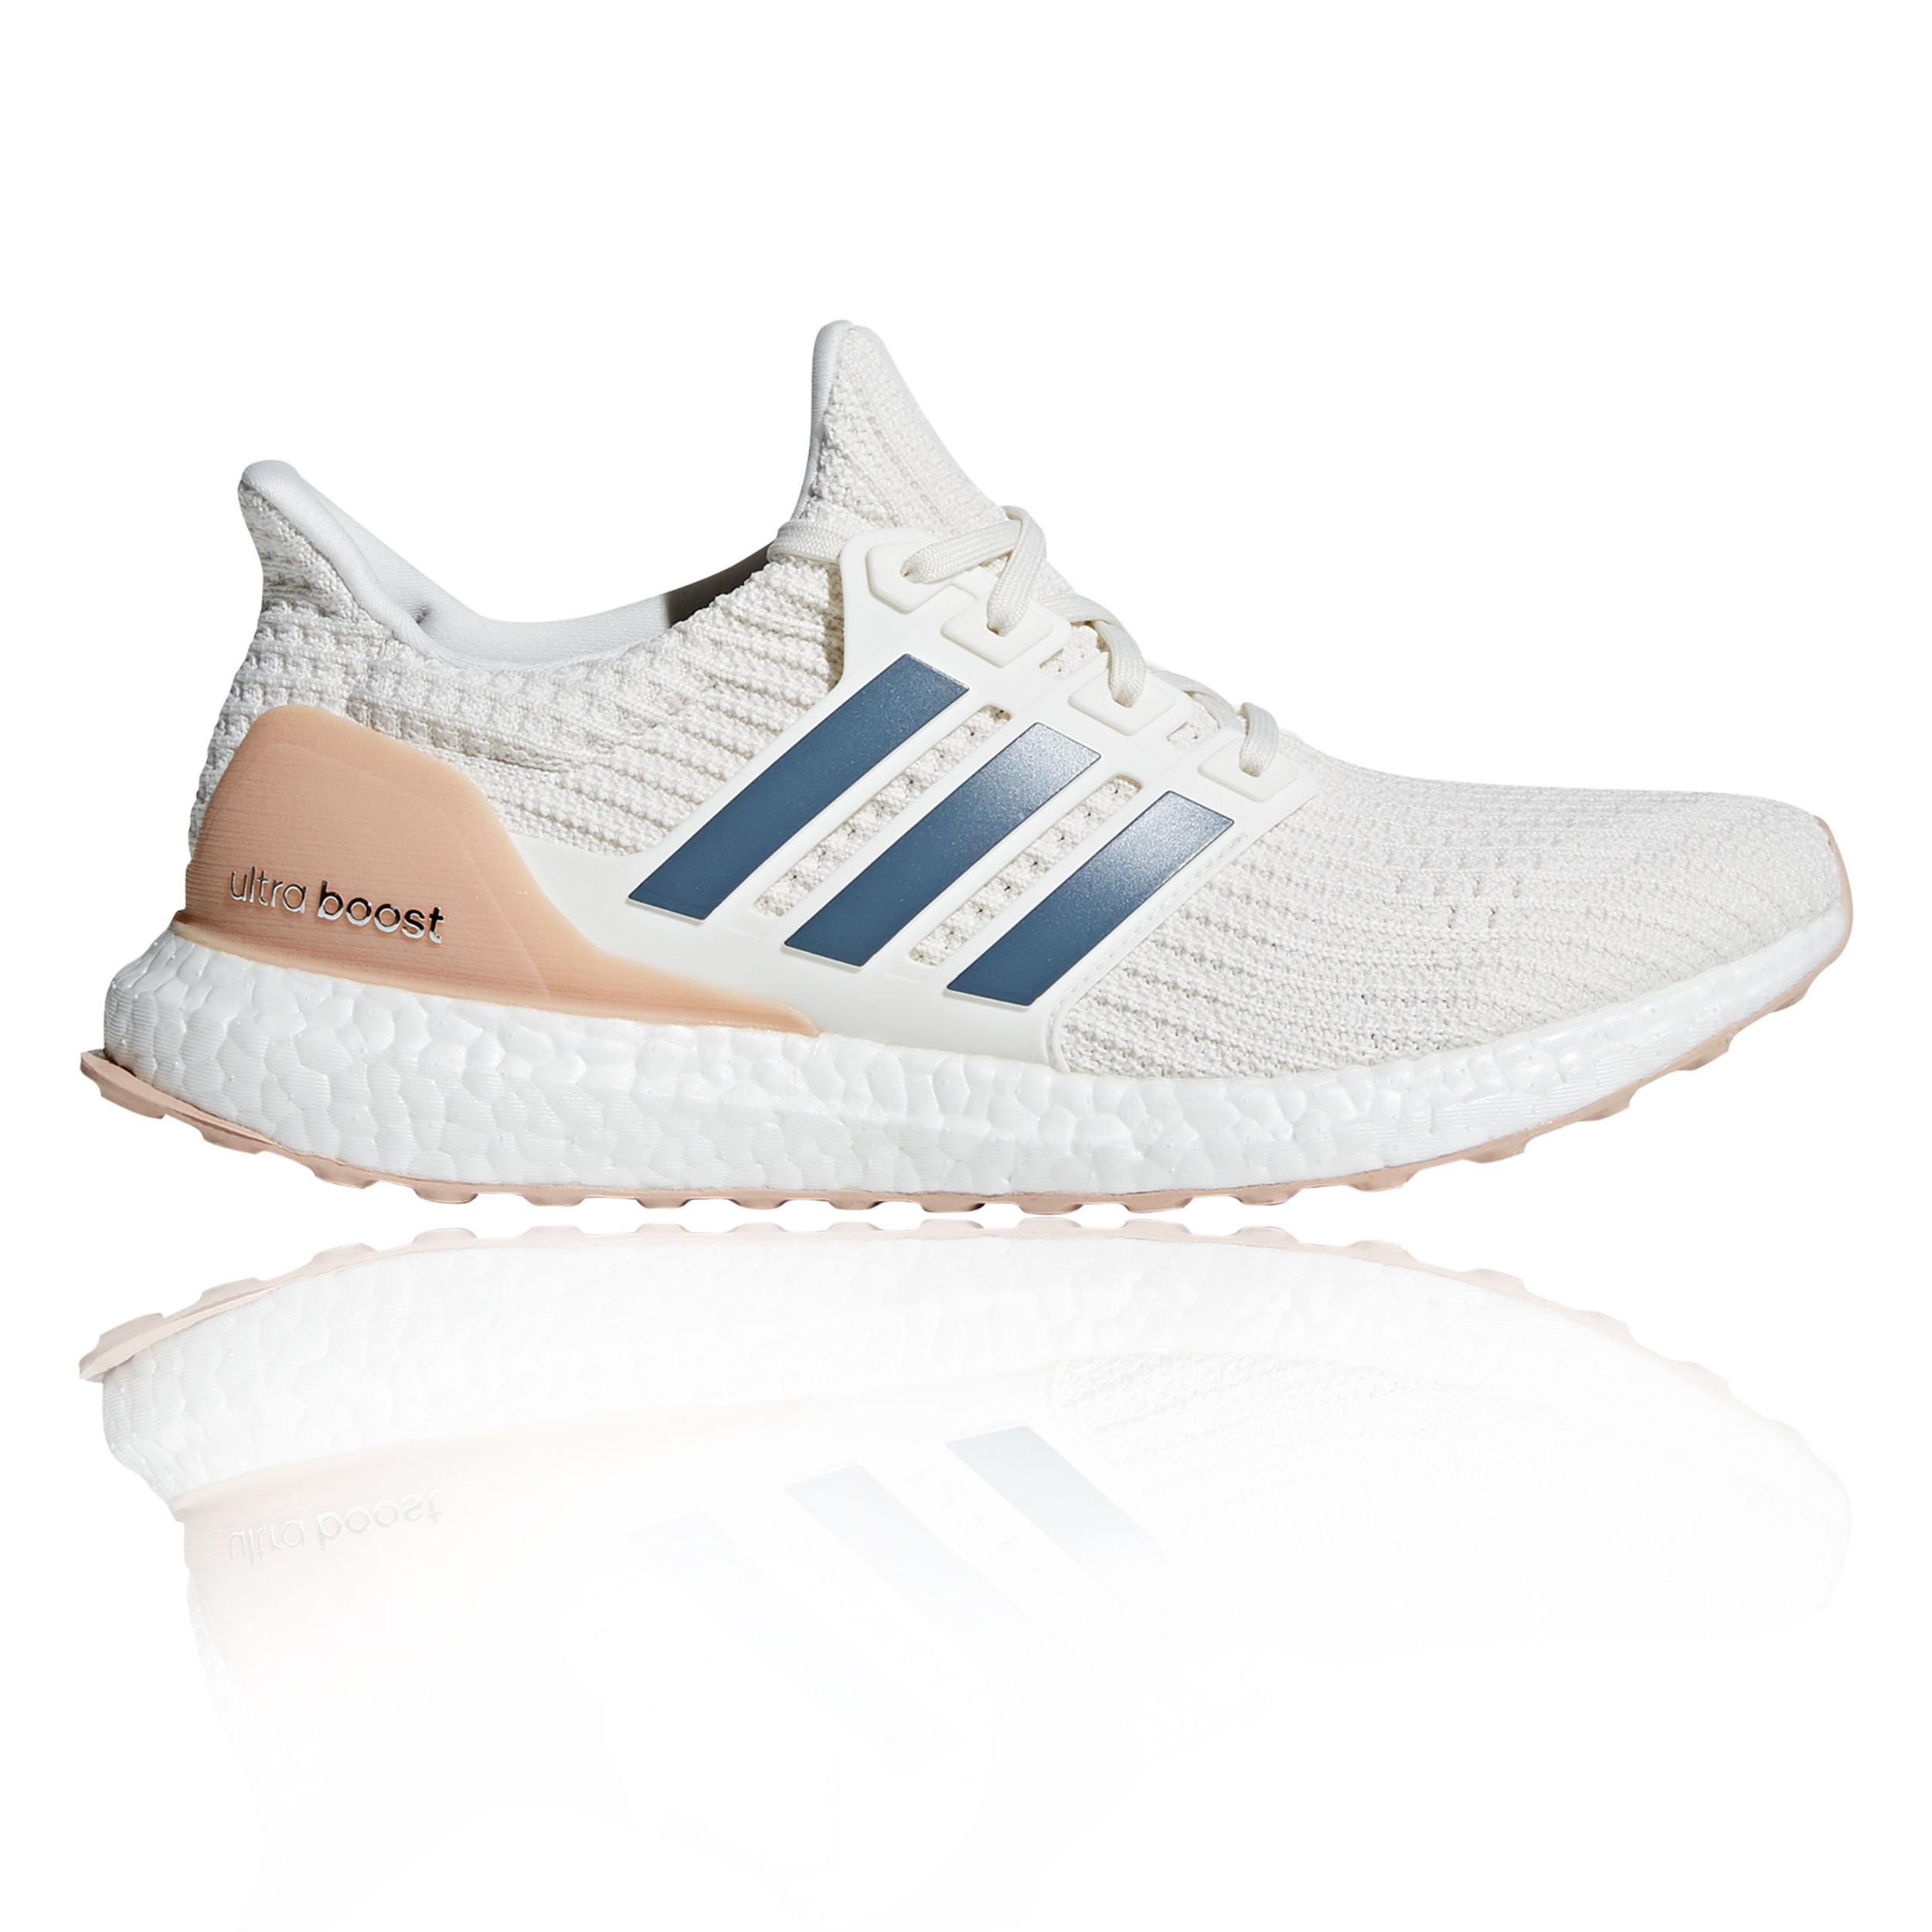 8d326da845397 Details about adidas Mens UltraBOOST Running Shoes Trainers Sneakers White  Sports Breathable